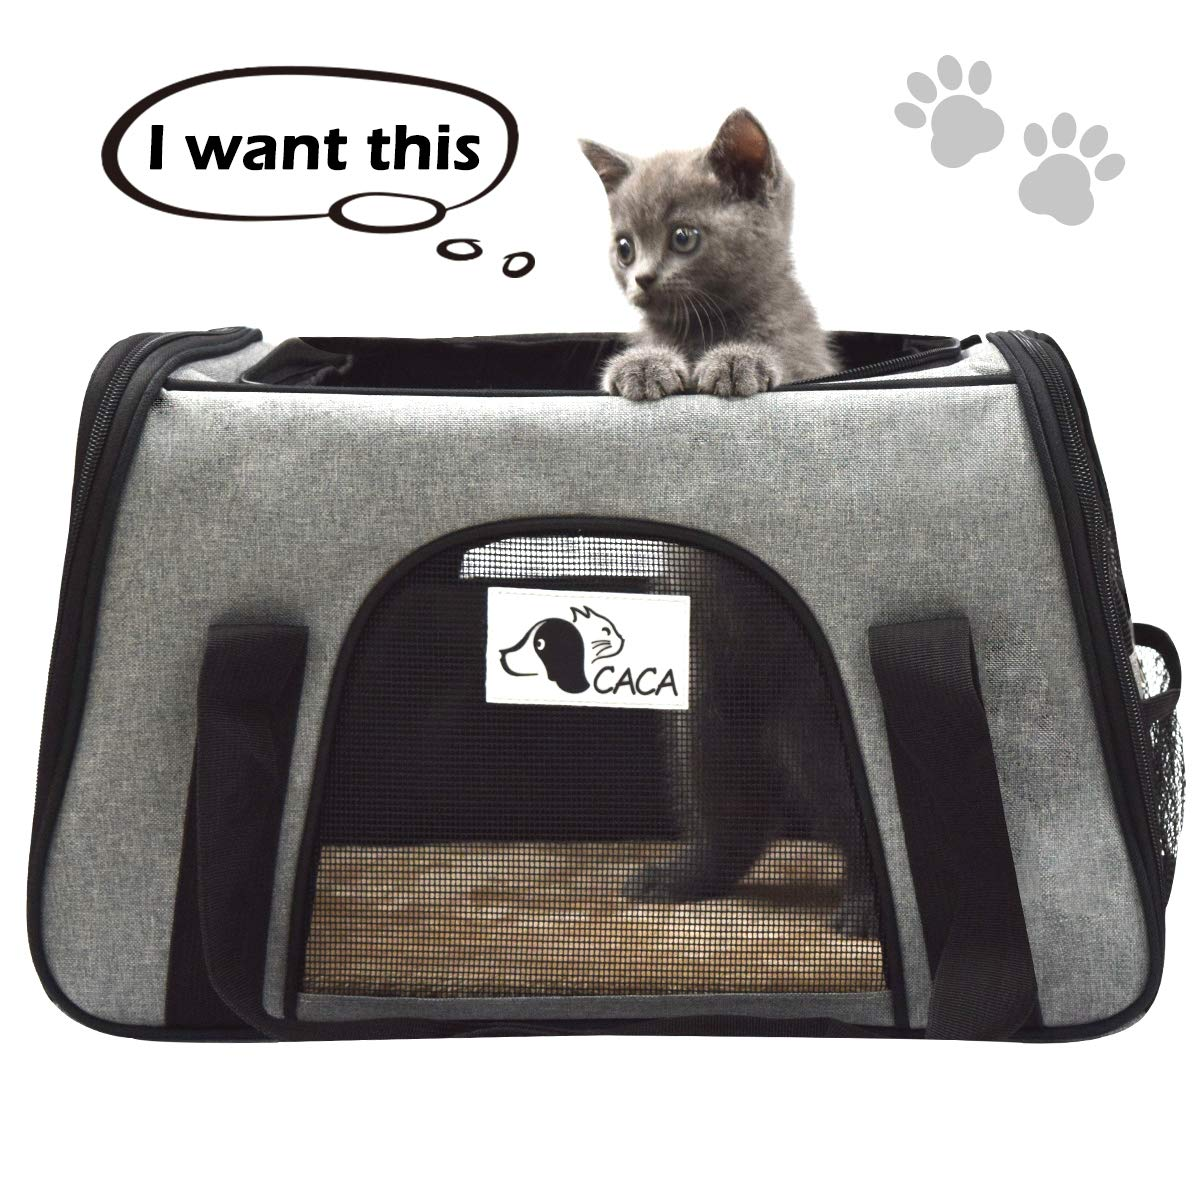 Pet Carrier Soft-Sided Airline Approved, Pet Travel Bag for Small Cats & Dogs with Side Pockets, Foldable Portable Handbag for Puppies, Kittens (Light Grey)